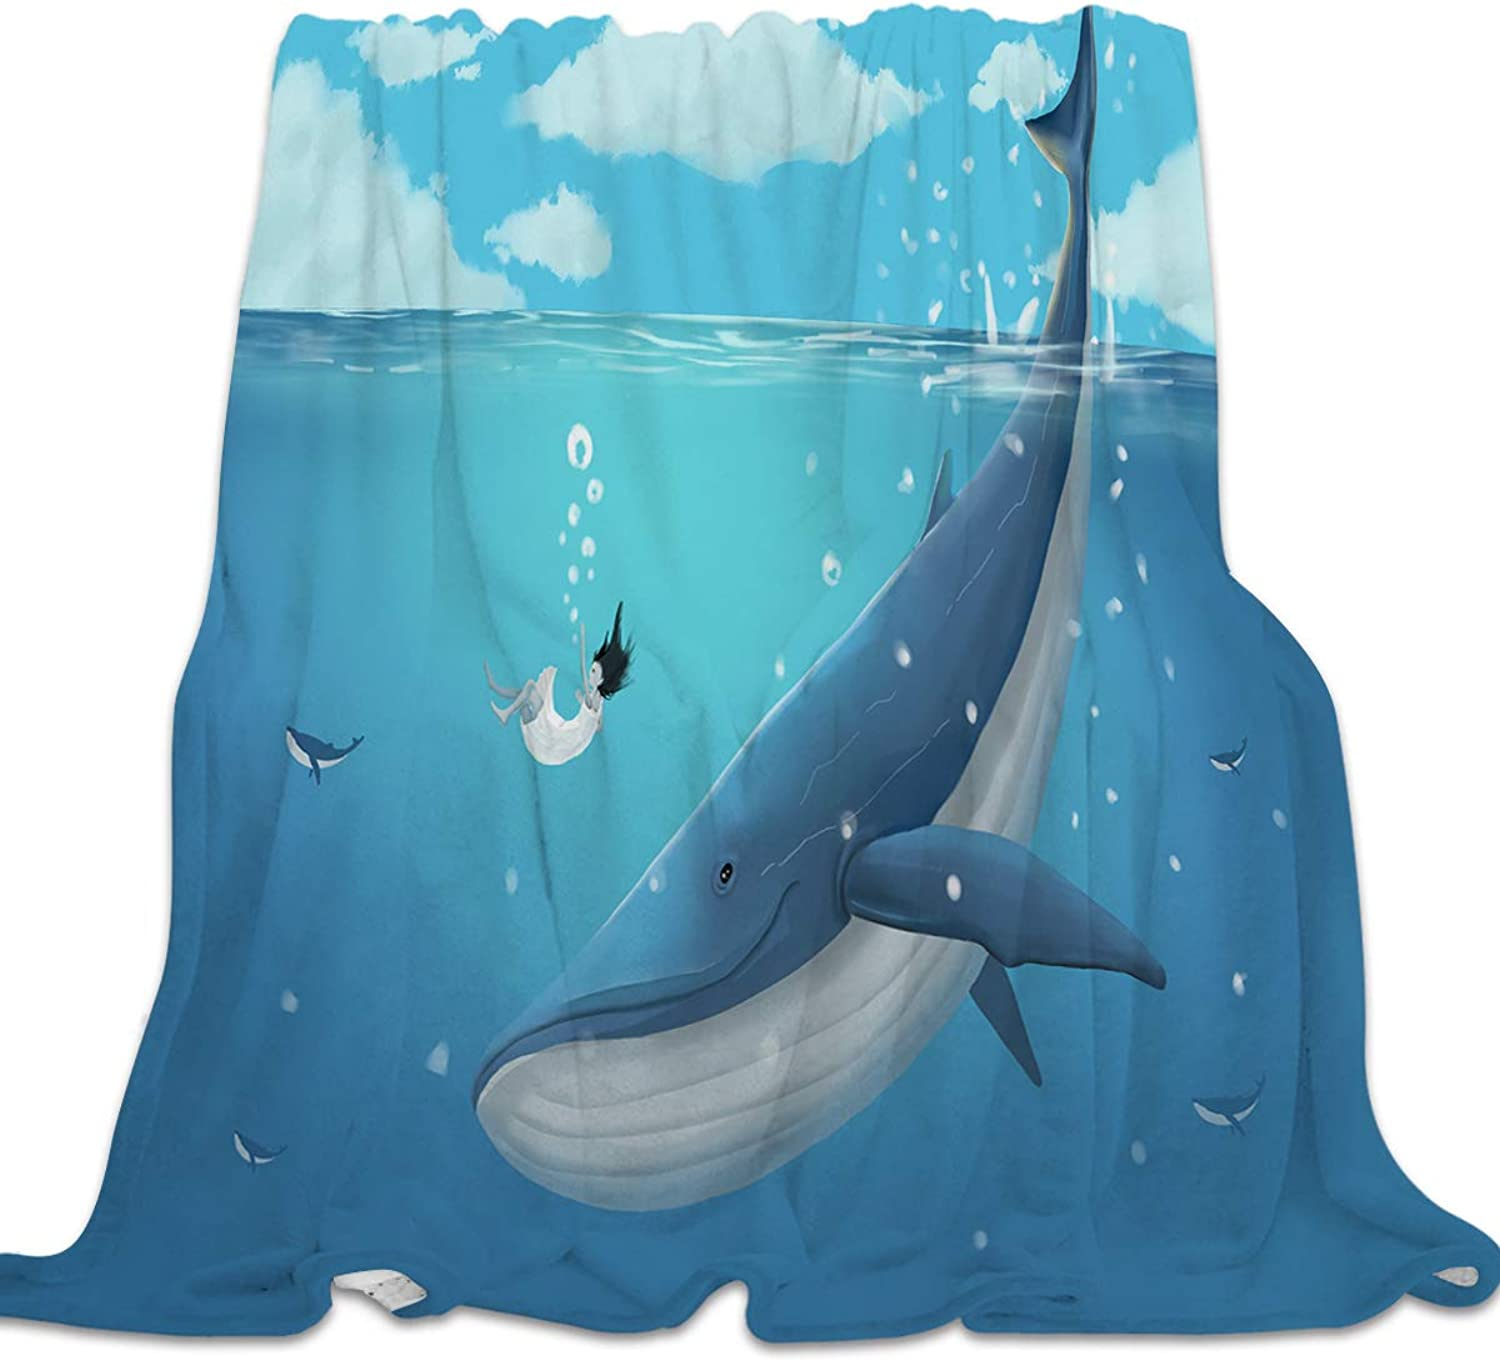 YEHO Art Gallery Flannel Fleece Bed Blanket Super Soft Cozy Throw-Blankets for Kids Girls Boys,Lightweight Blankets for Bed Sofa Couch Chair Day Nap,bluee Whale with a Girl in The Deep Sea,39x49inch